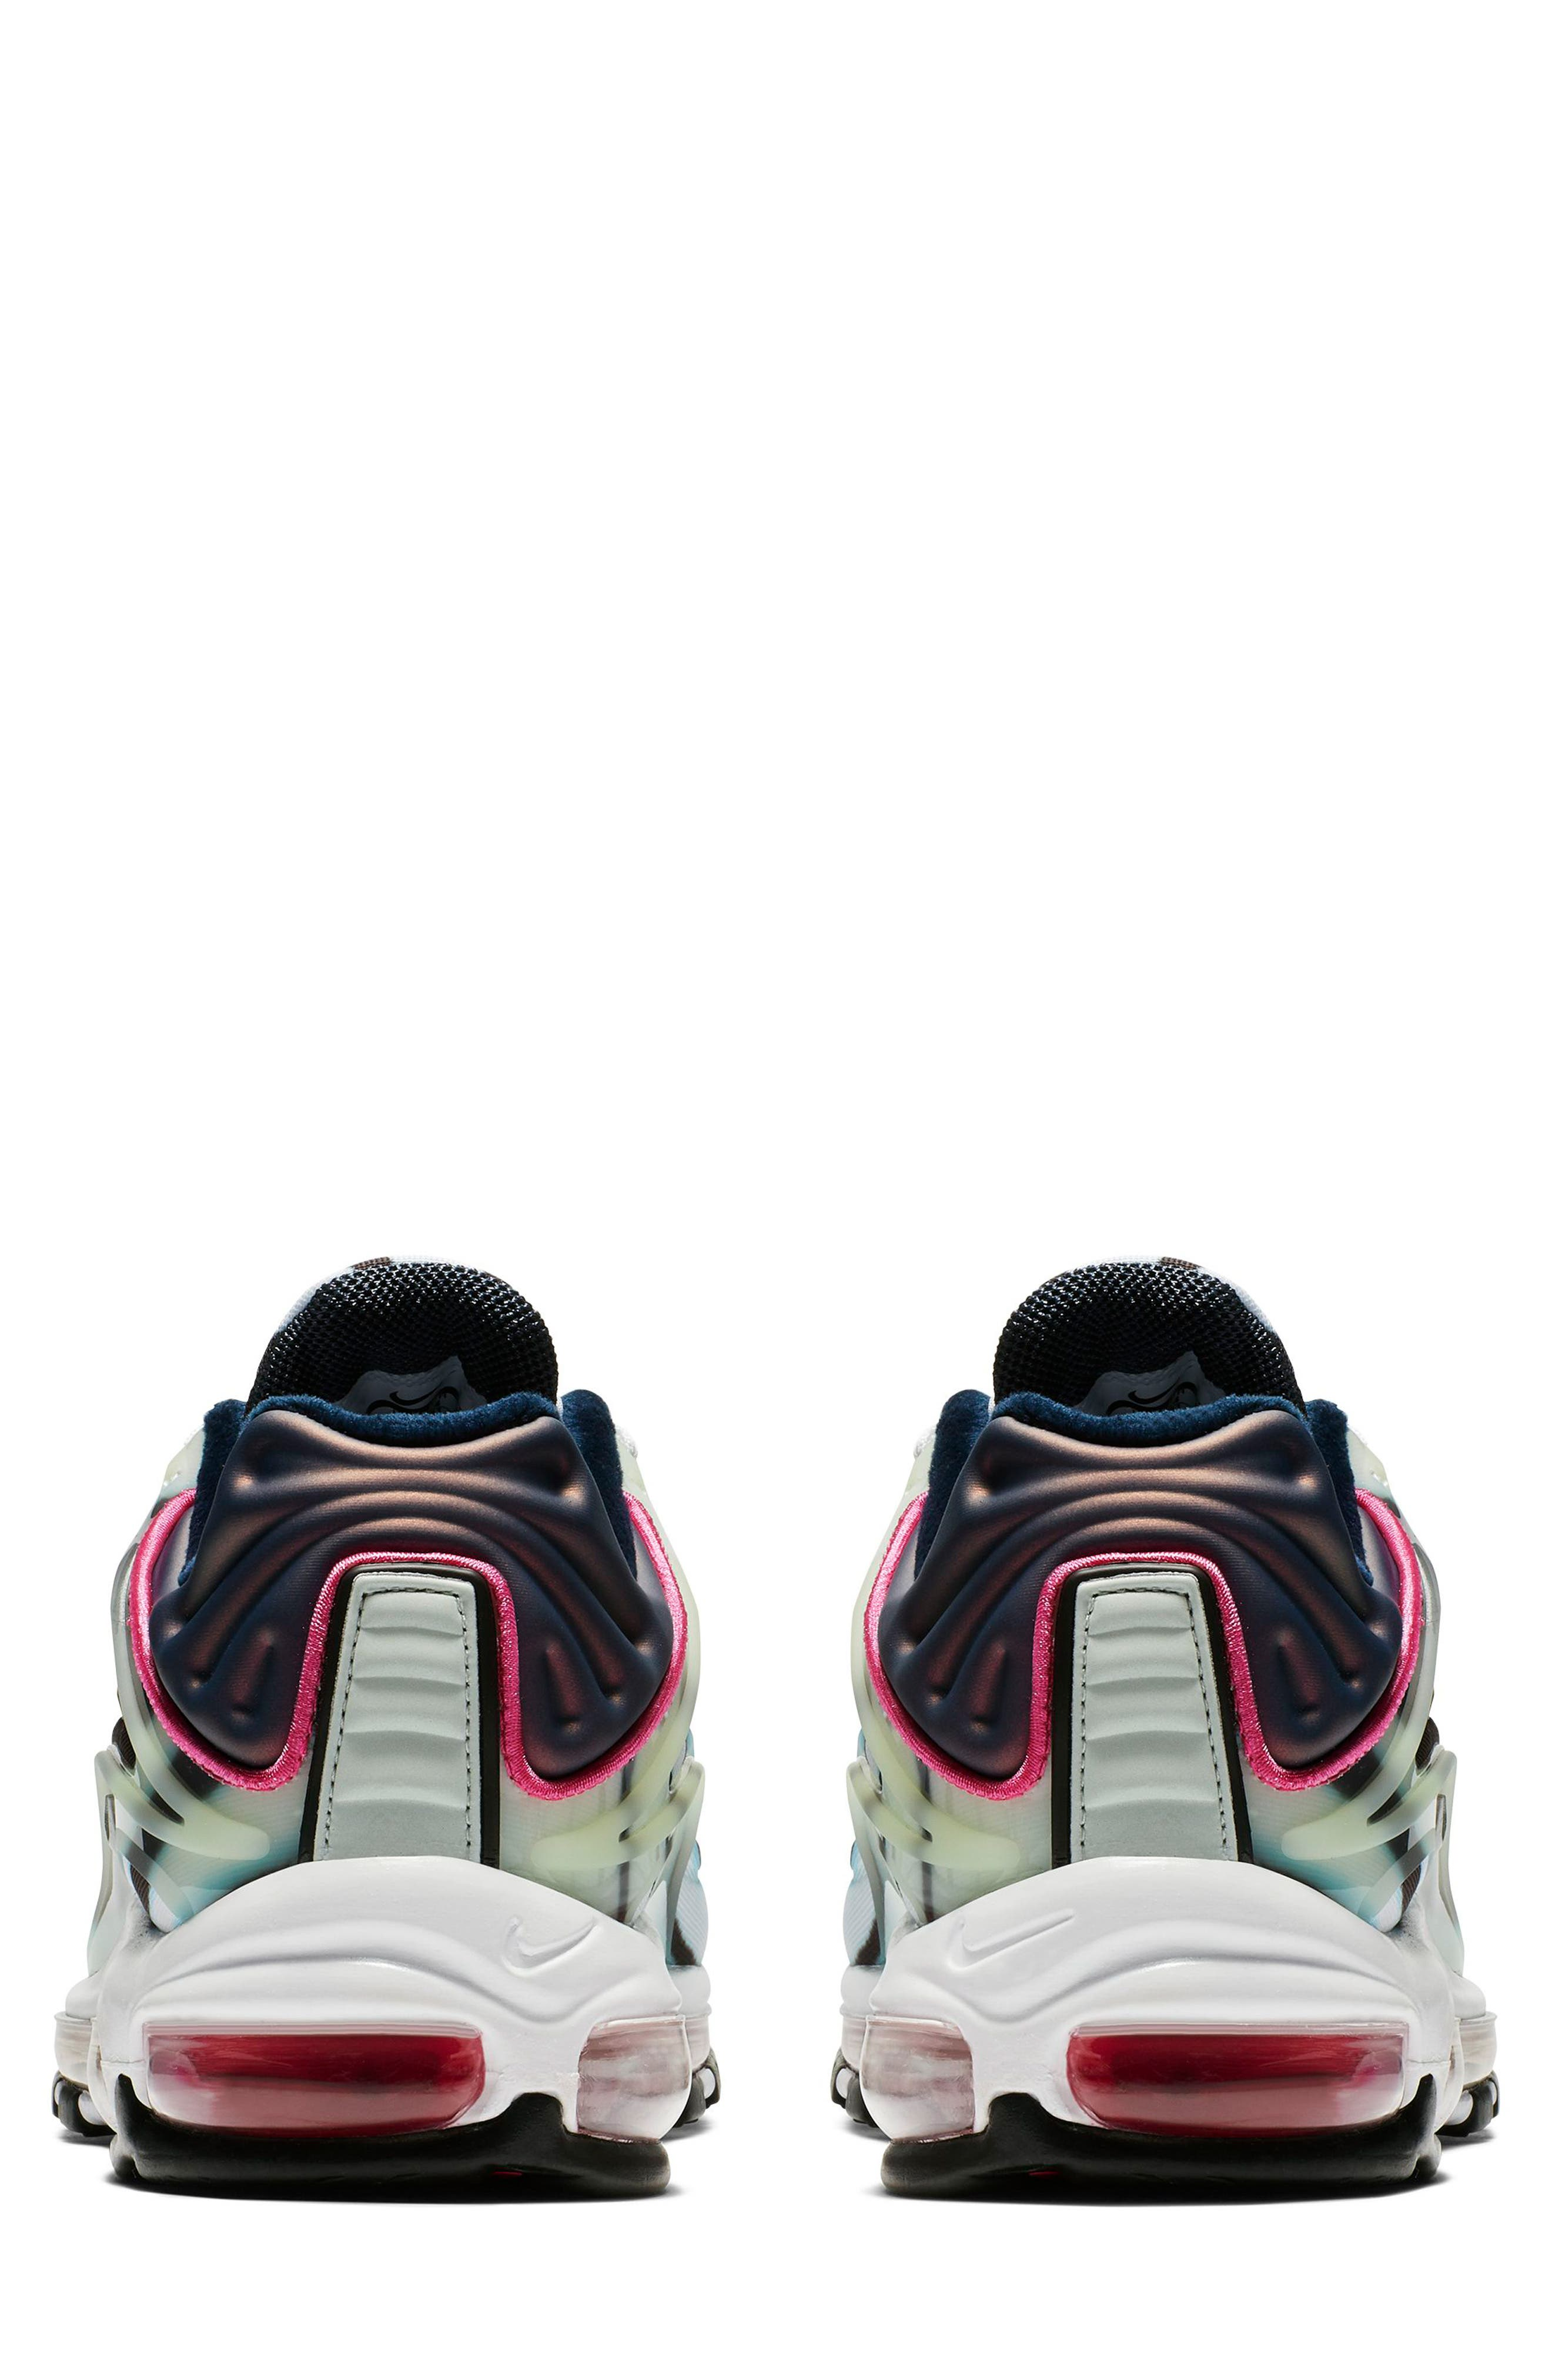 Air Max Deluxe Sneaker,                             Alternate thumbnail 2, color,                             GREEN/ SILVER/ OBSIDIAN/ BLACK